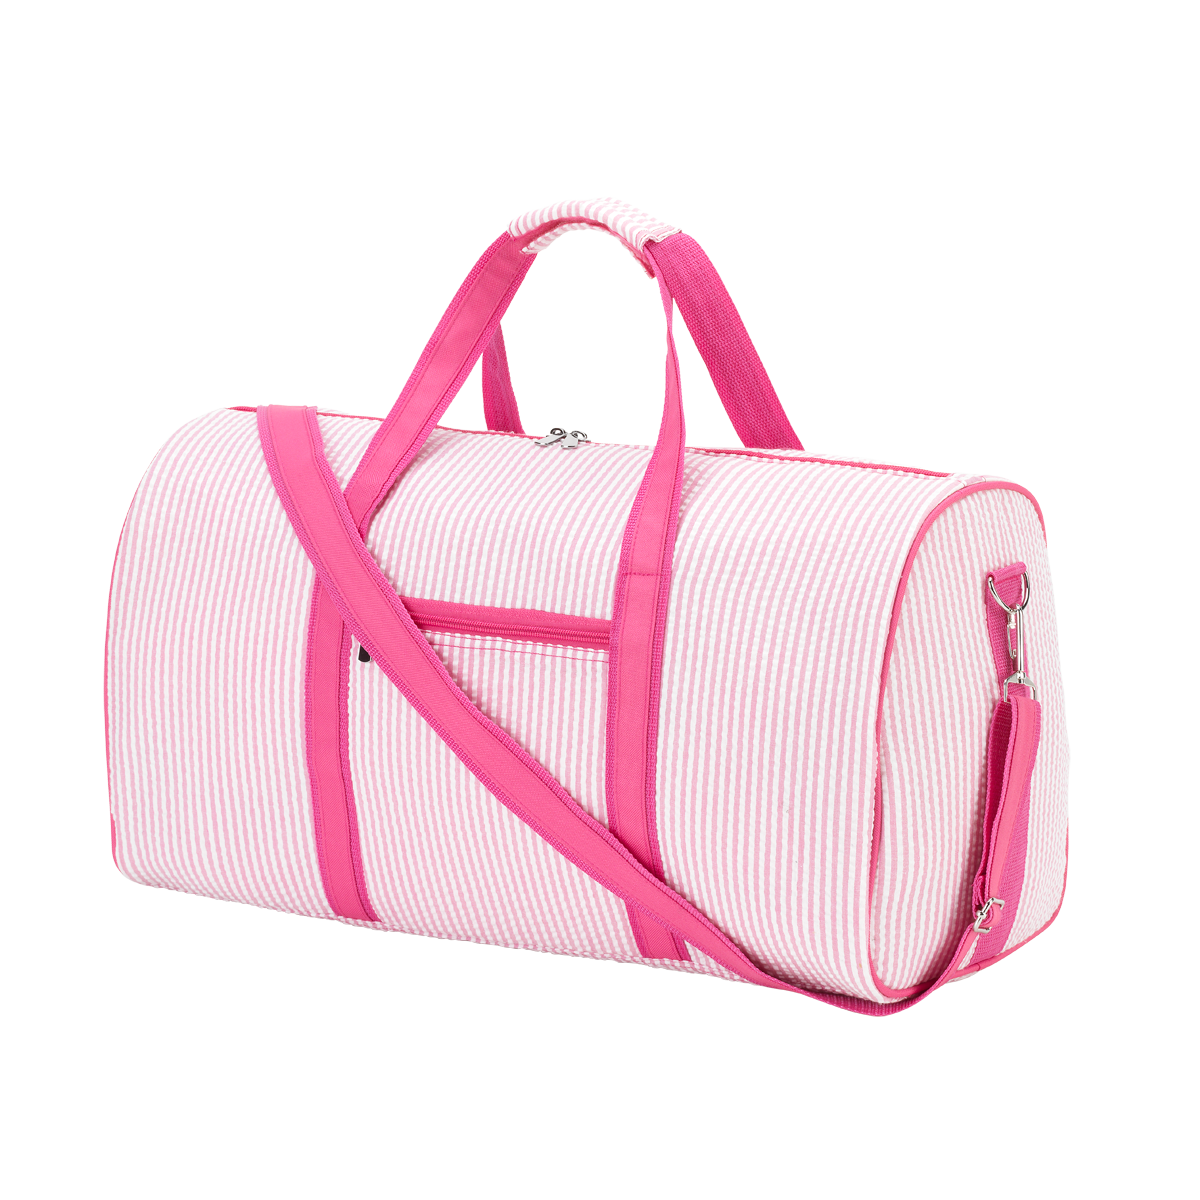 Monogrammed overnight bag pink seersucker